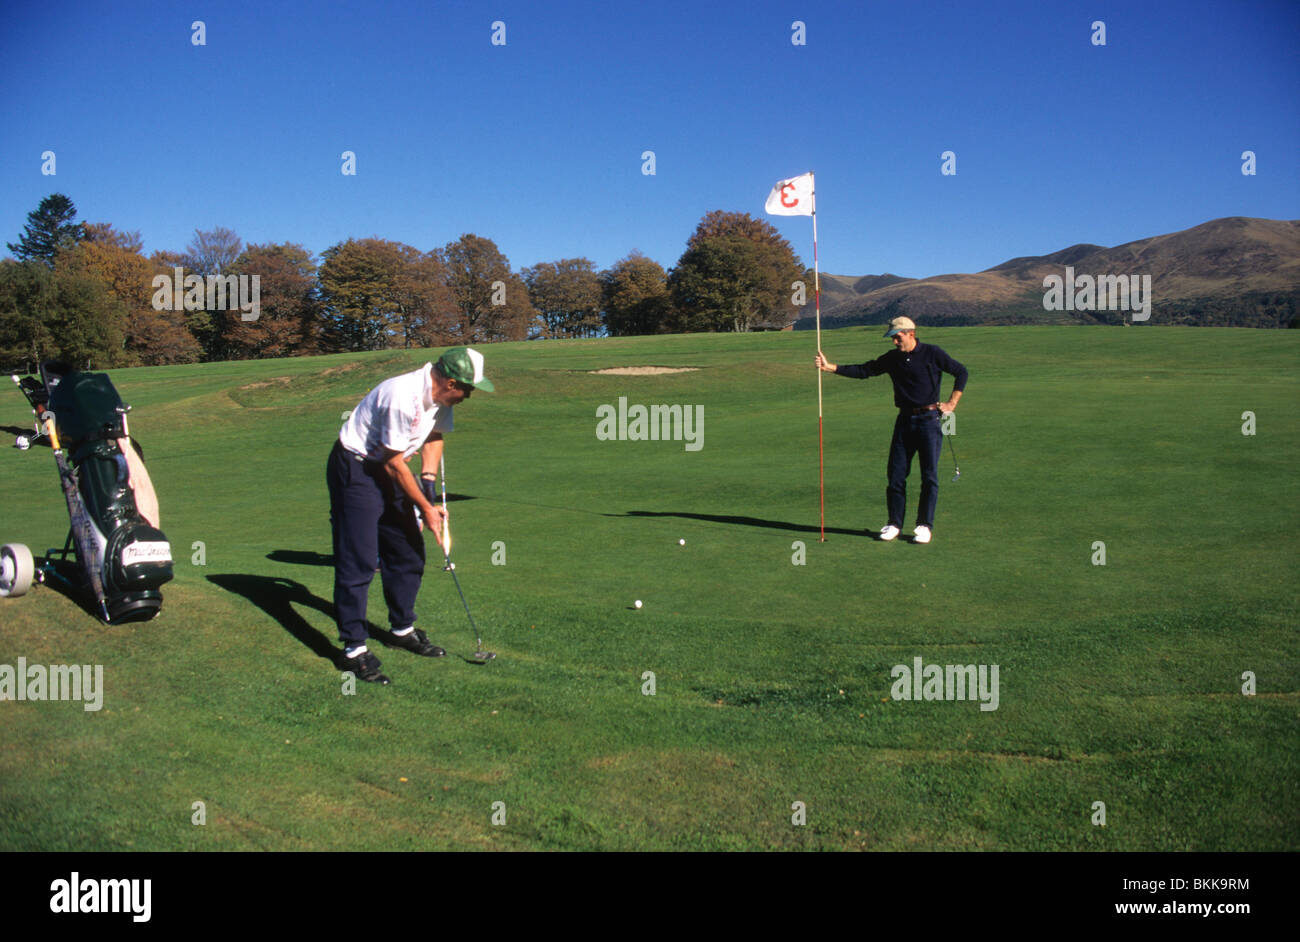 People playing golf - Golfers putting golf ball into hole. - Stock Image